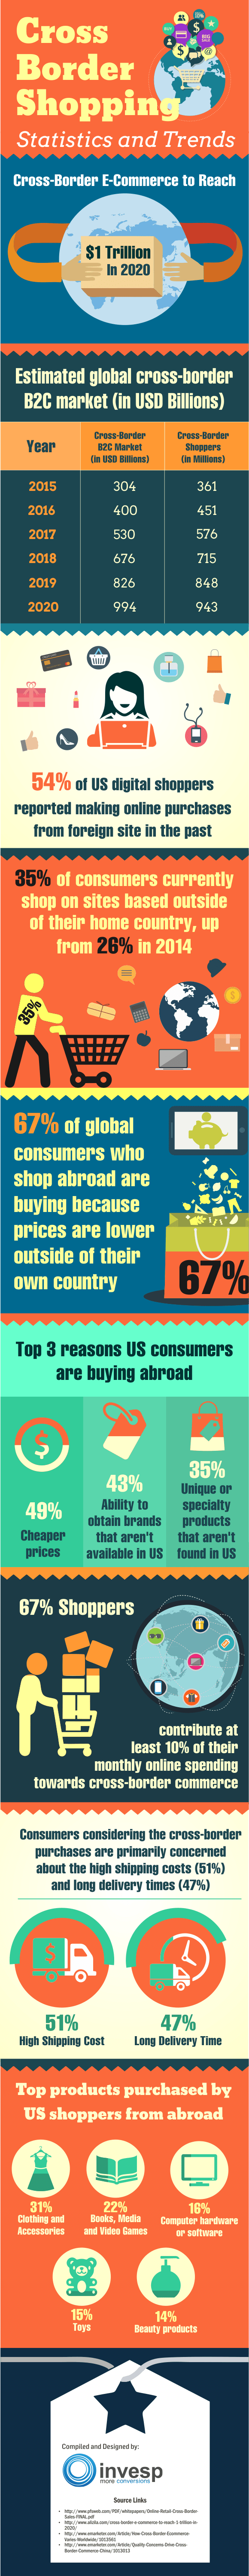 Cross Border Shopping  Statistics and Trends